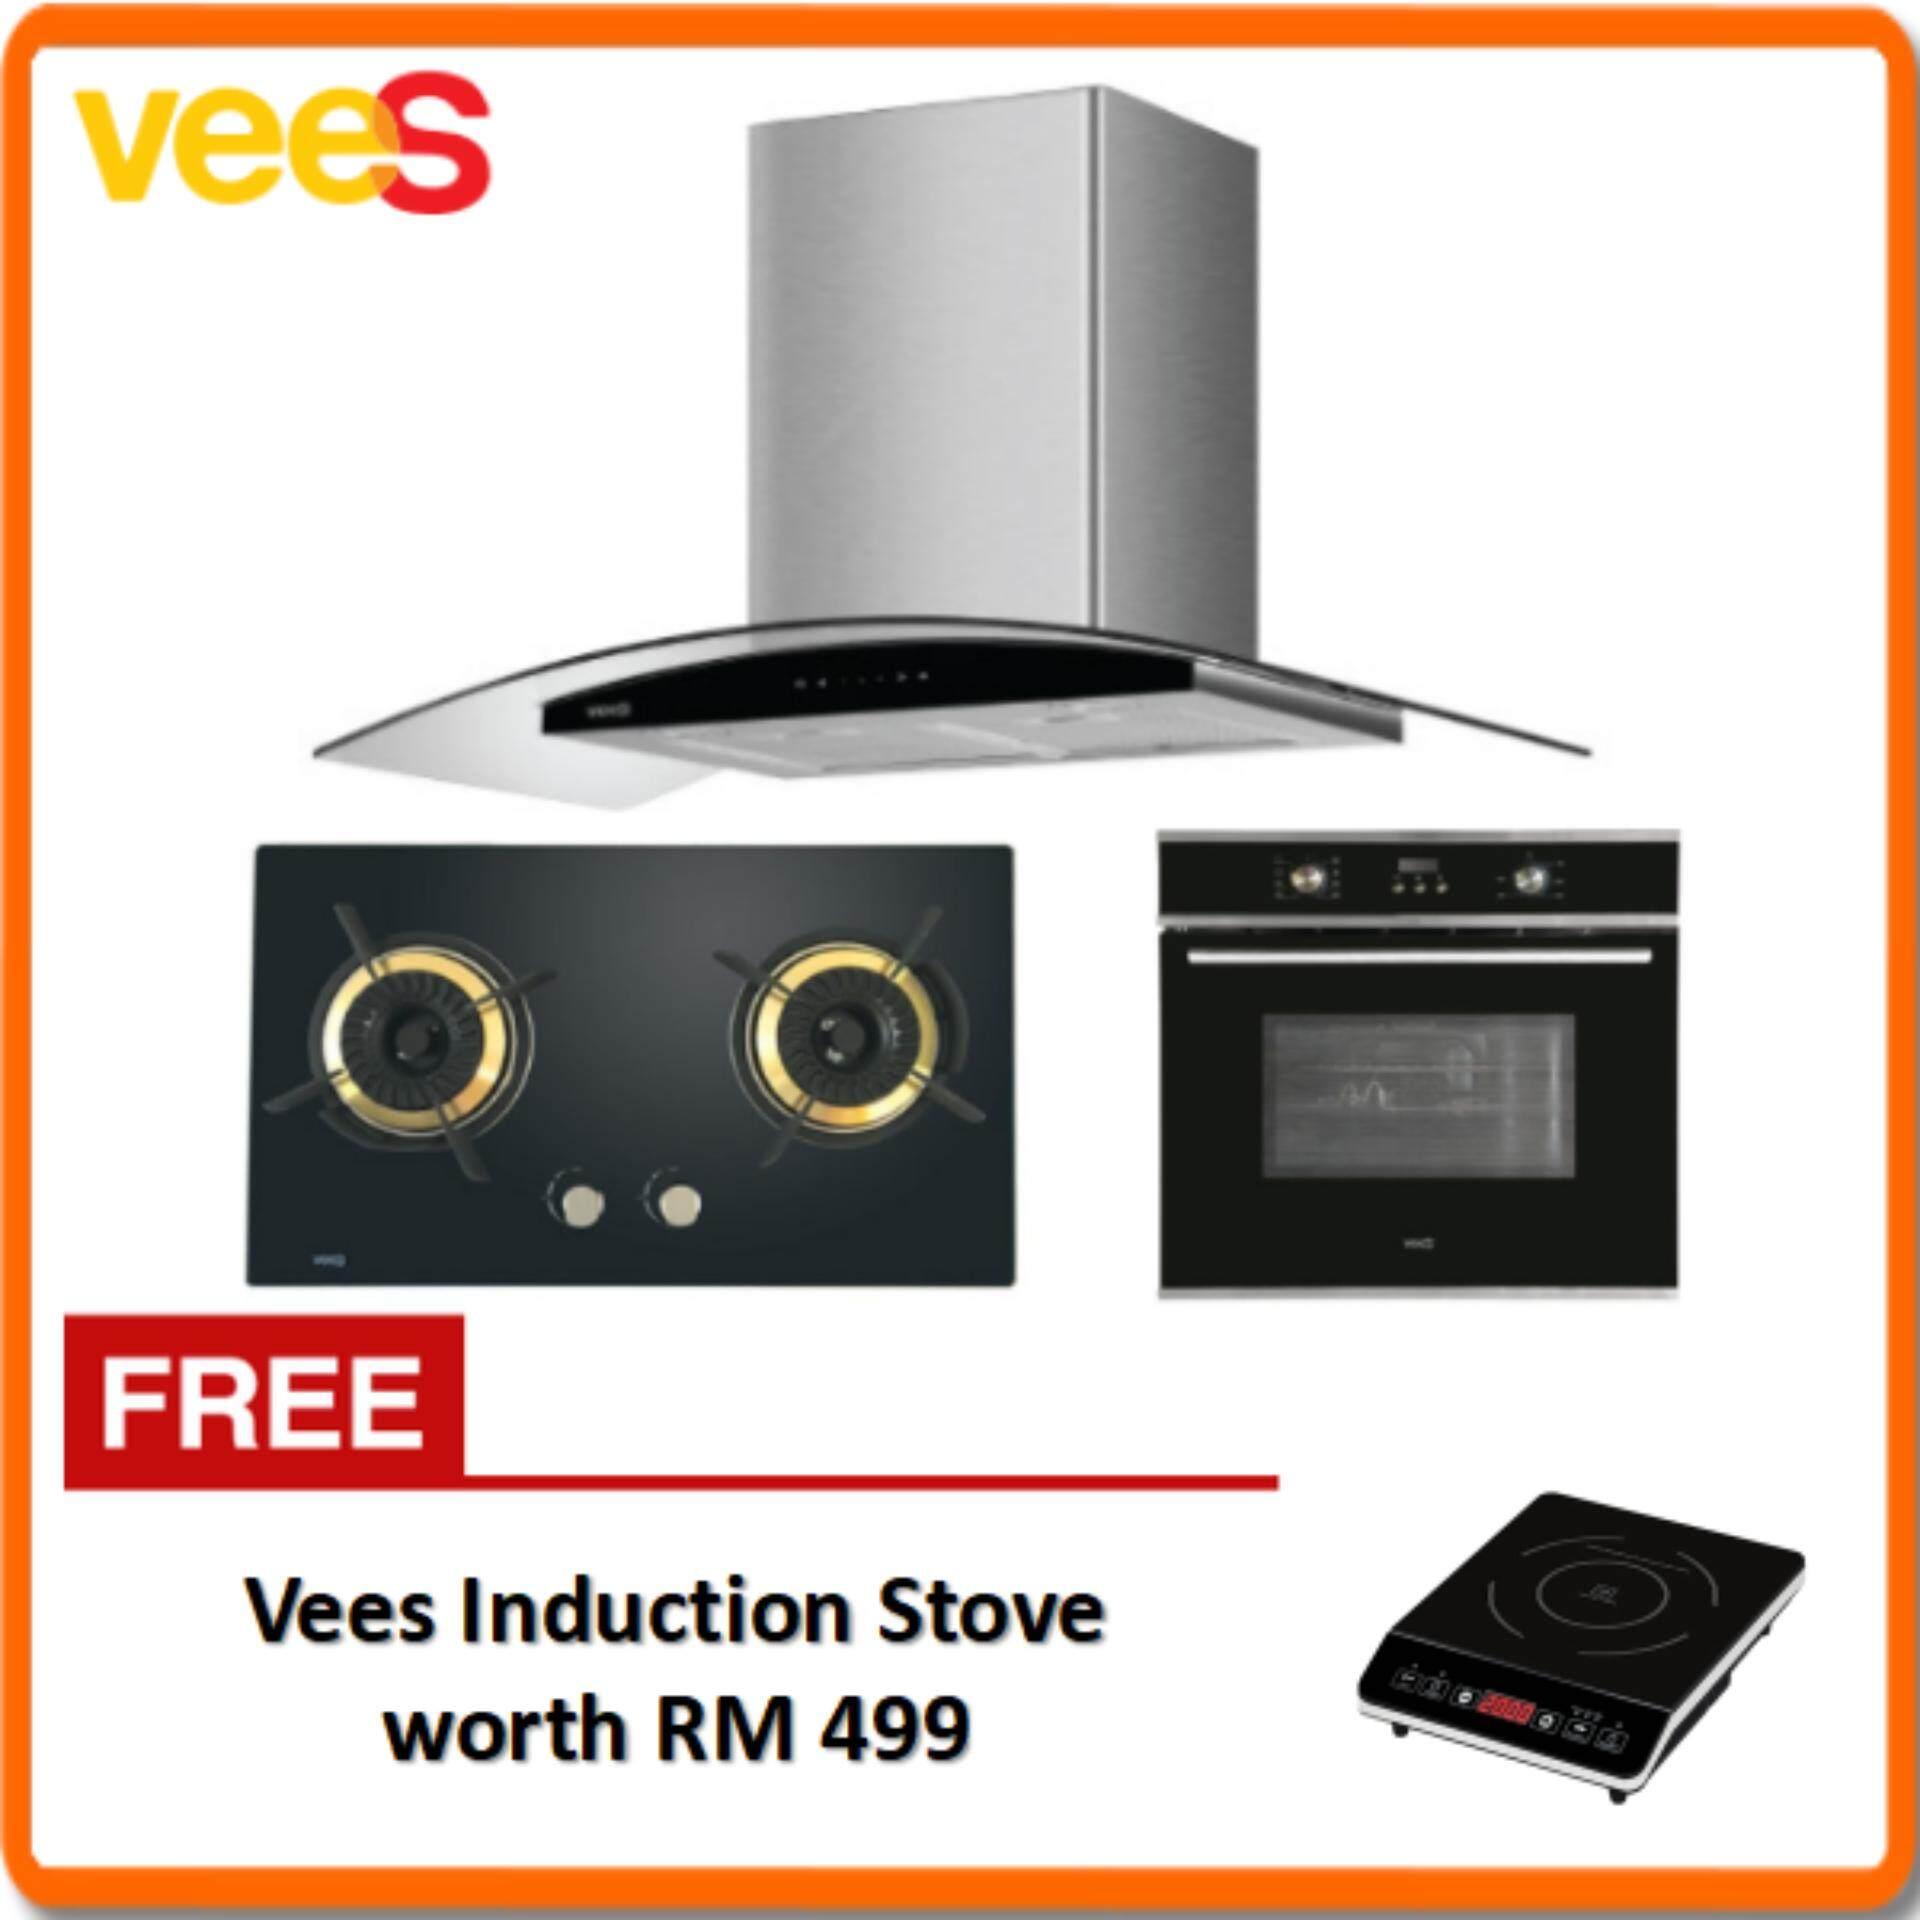 Vees DH-05A Delicooker Hood + Vees DGH-C28 Gas Hob + Vees MO-65DT08F Oven